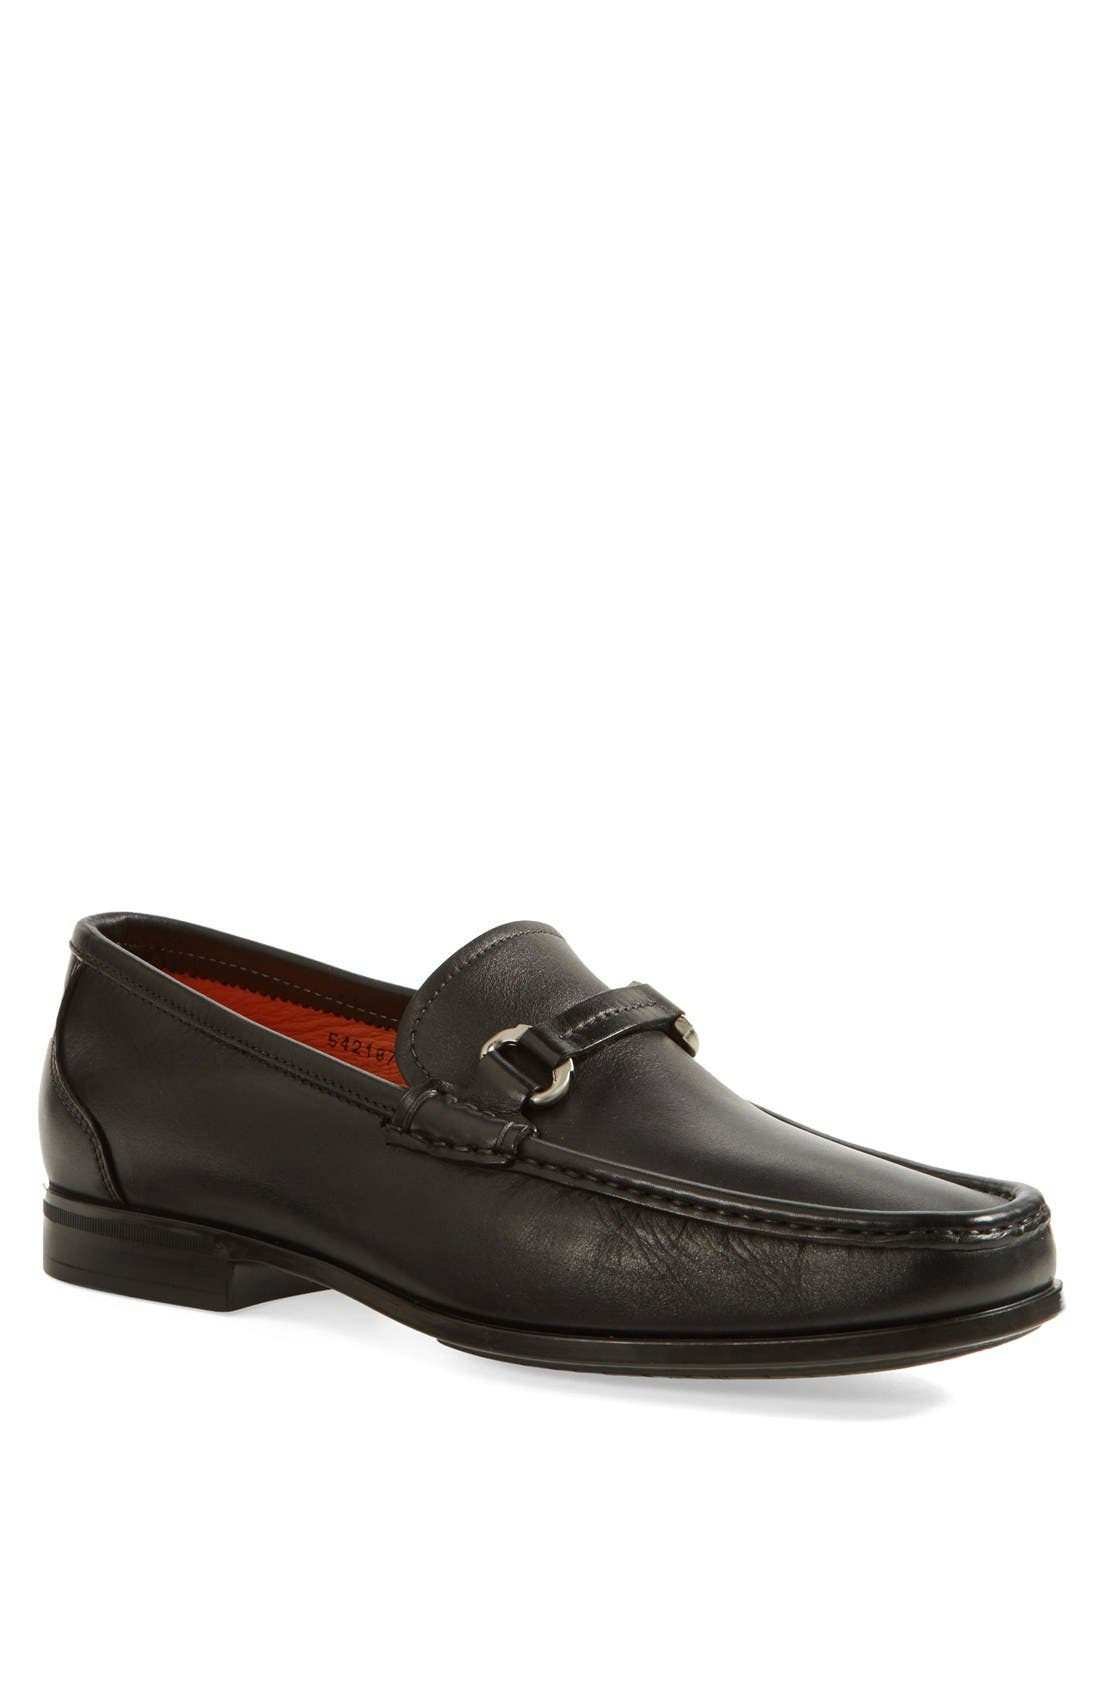 Alternate Image 1 Selected - Santoni 'Vance' Bit Loafer (Men)